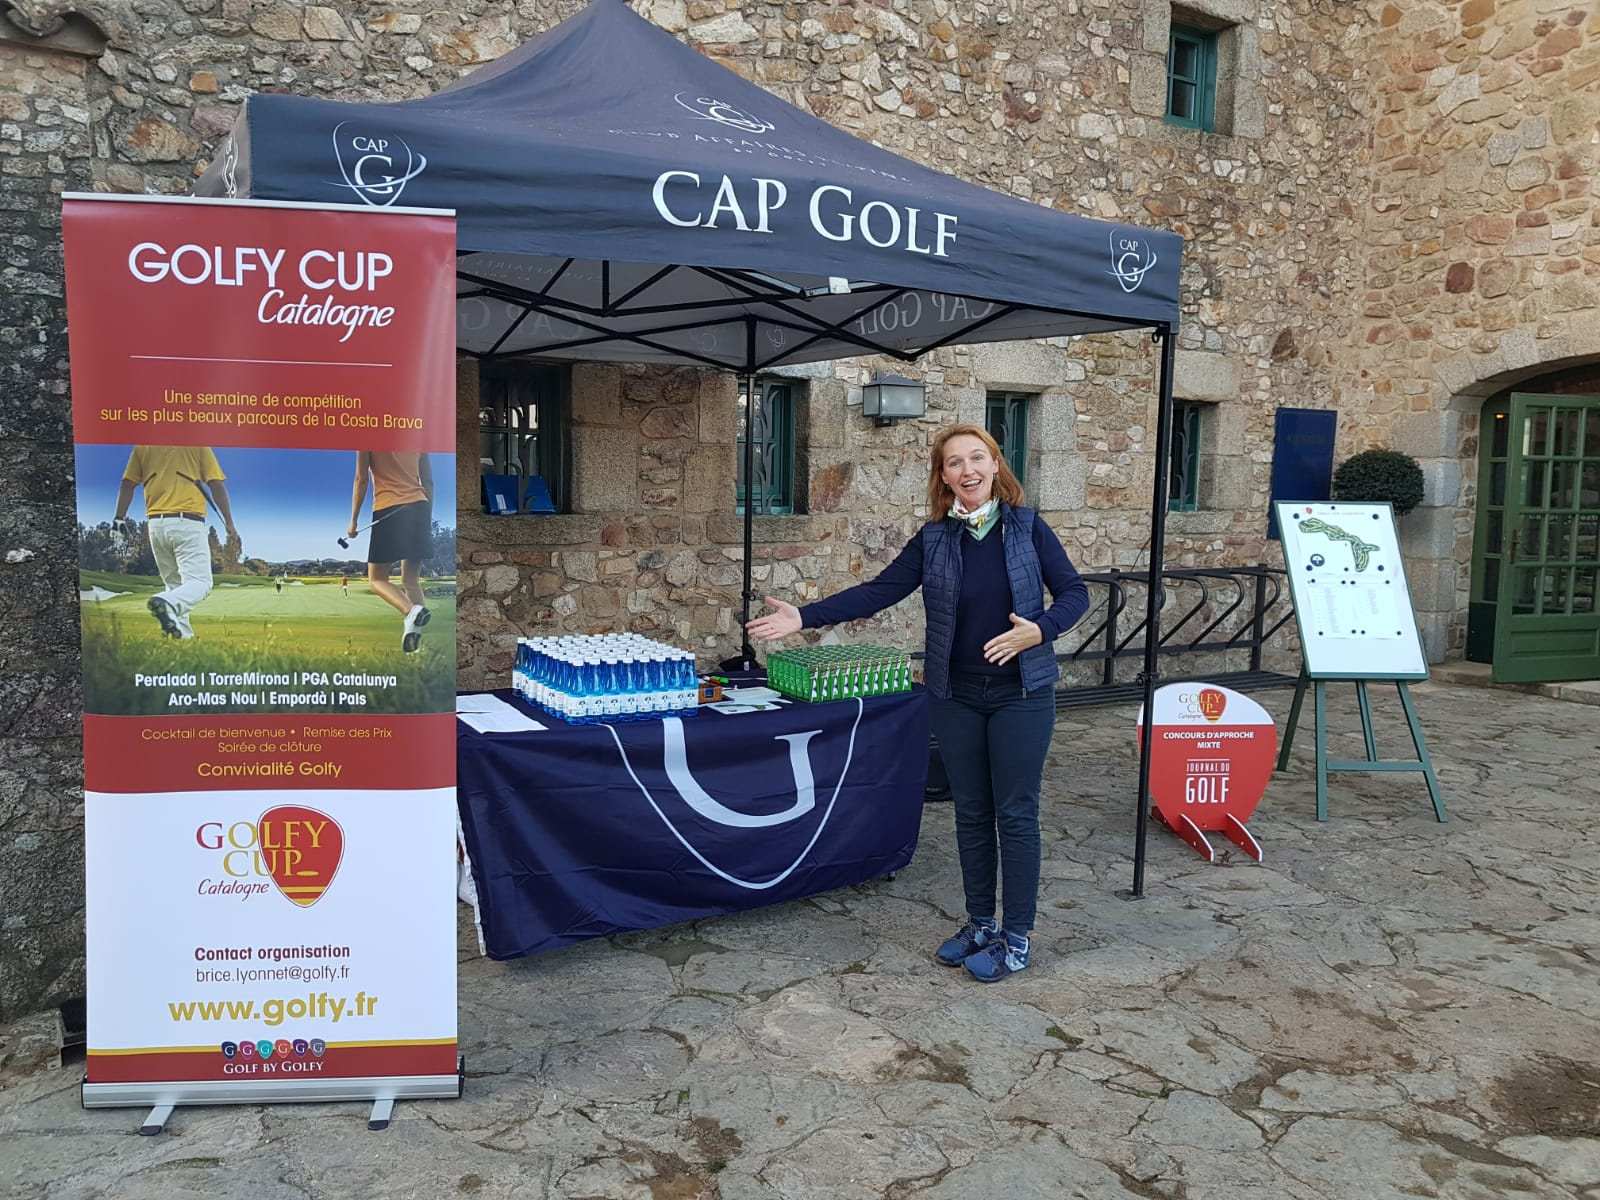 WhatsApp-Image-2019-11-08-at-08.26.18 Golfy Cup Catalogne 2019